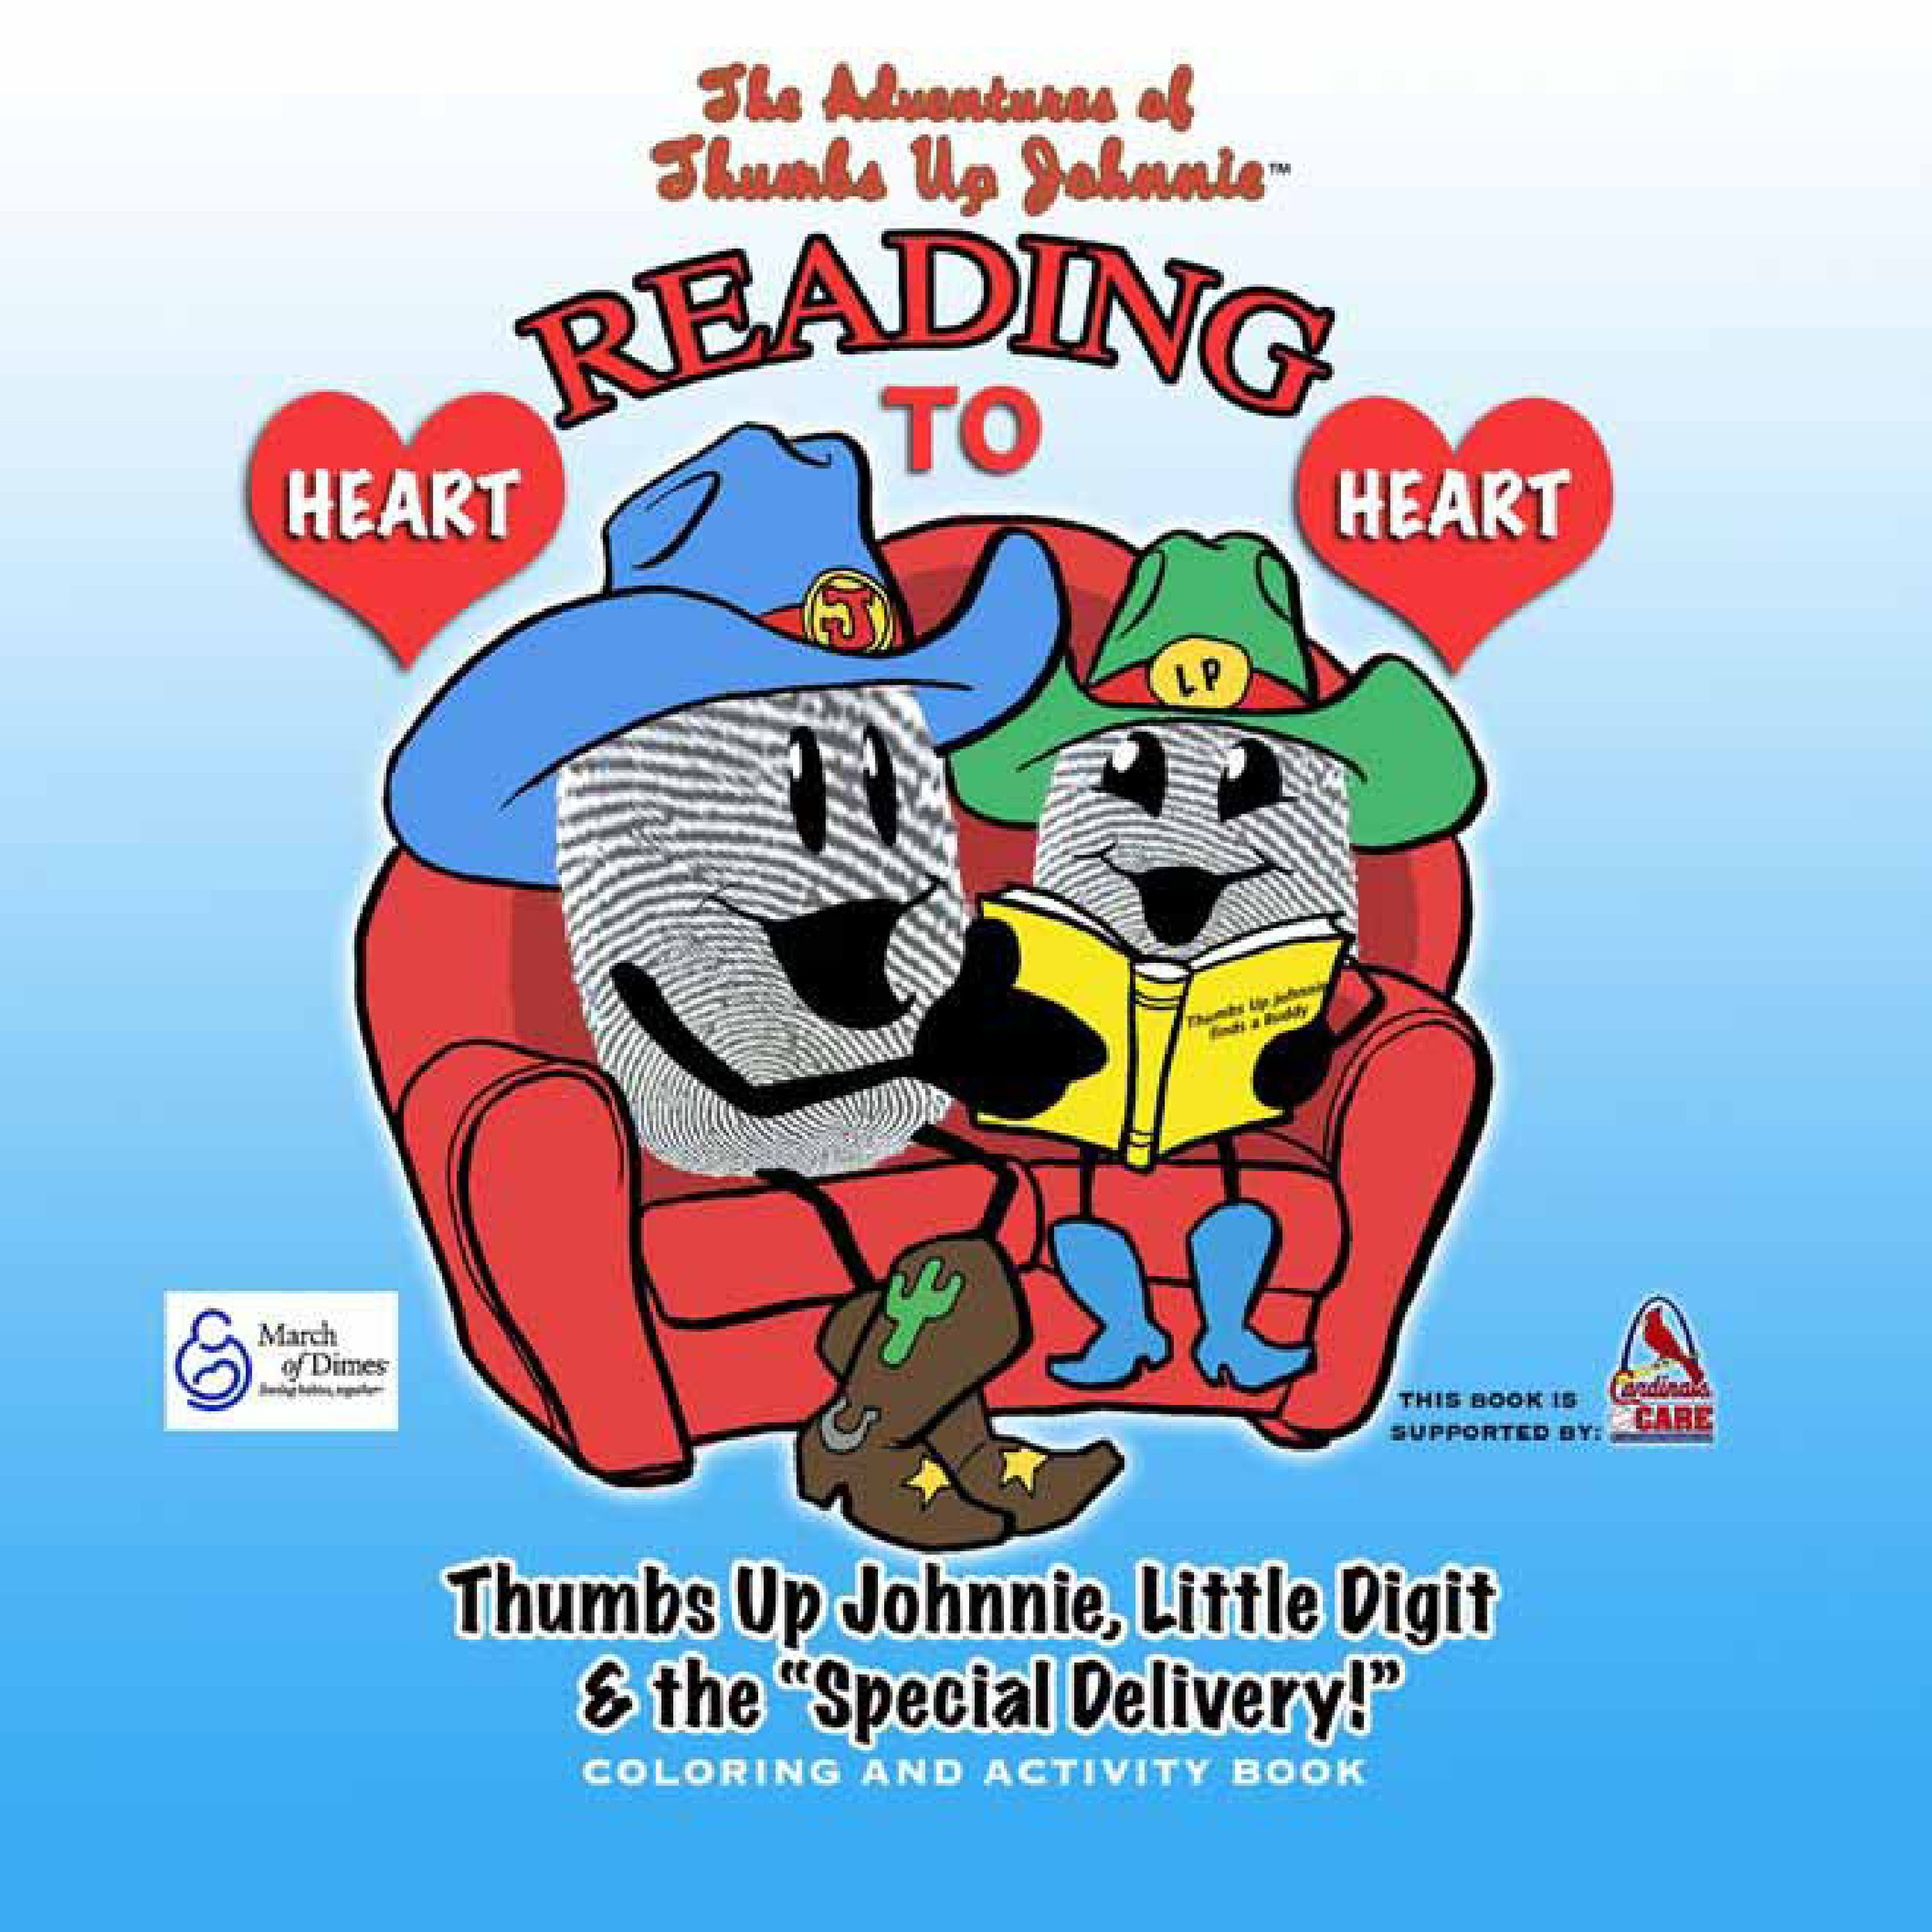 THE ADVENTURES OF THUMBS UP JOHNNIE: READING HEART TO HEART